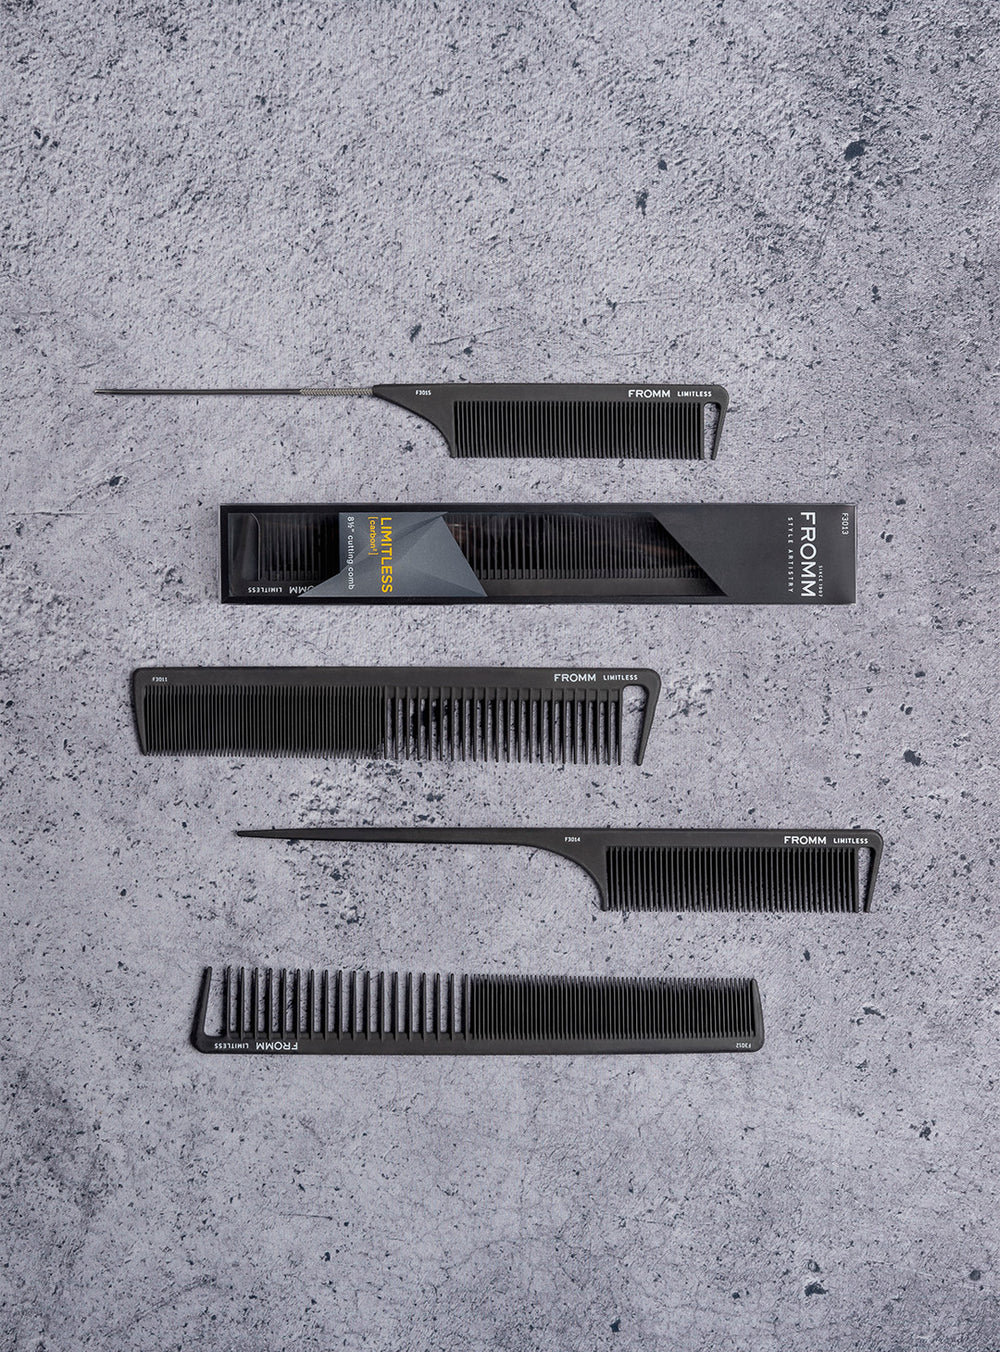 Fromm Pro Professional Hair Salon Limitless Black Carbon Comb Collection